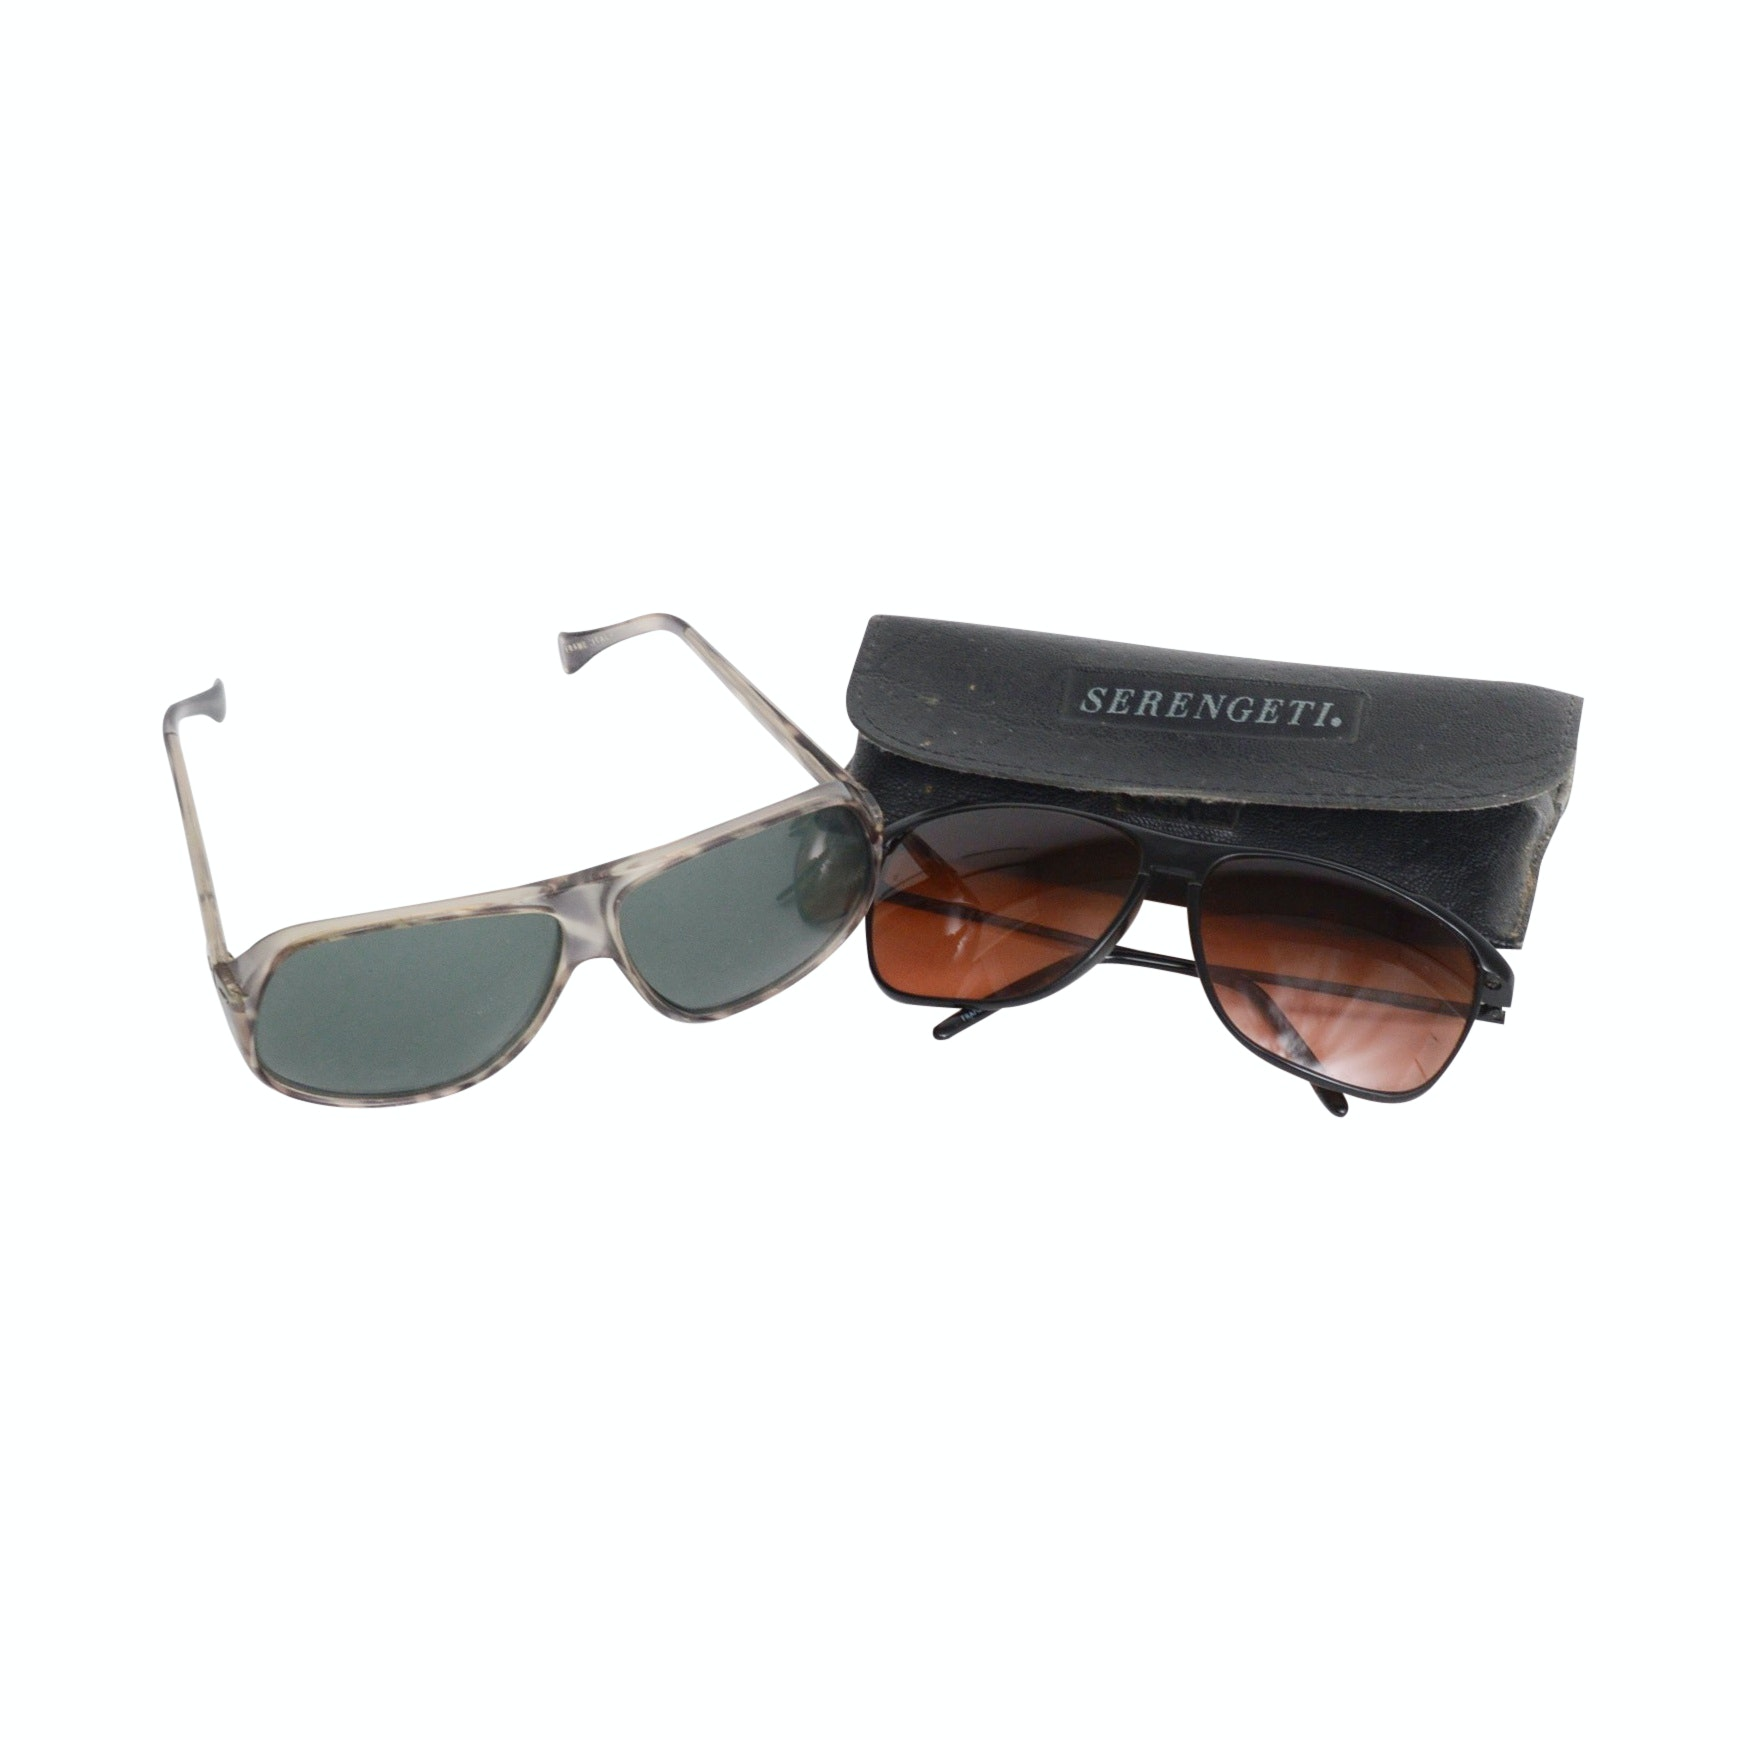 Serengeti Drivers and Italian Frame Sunglasses